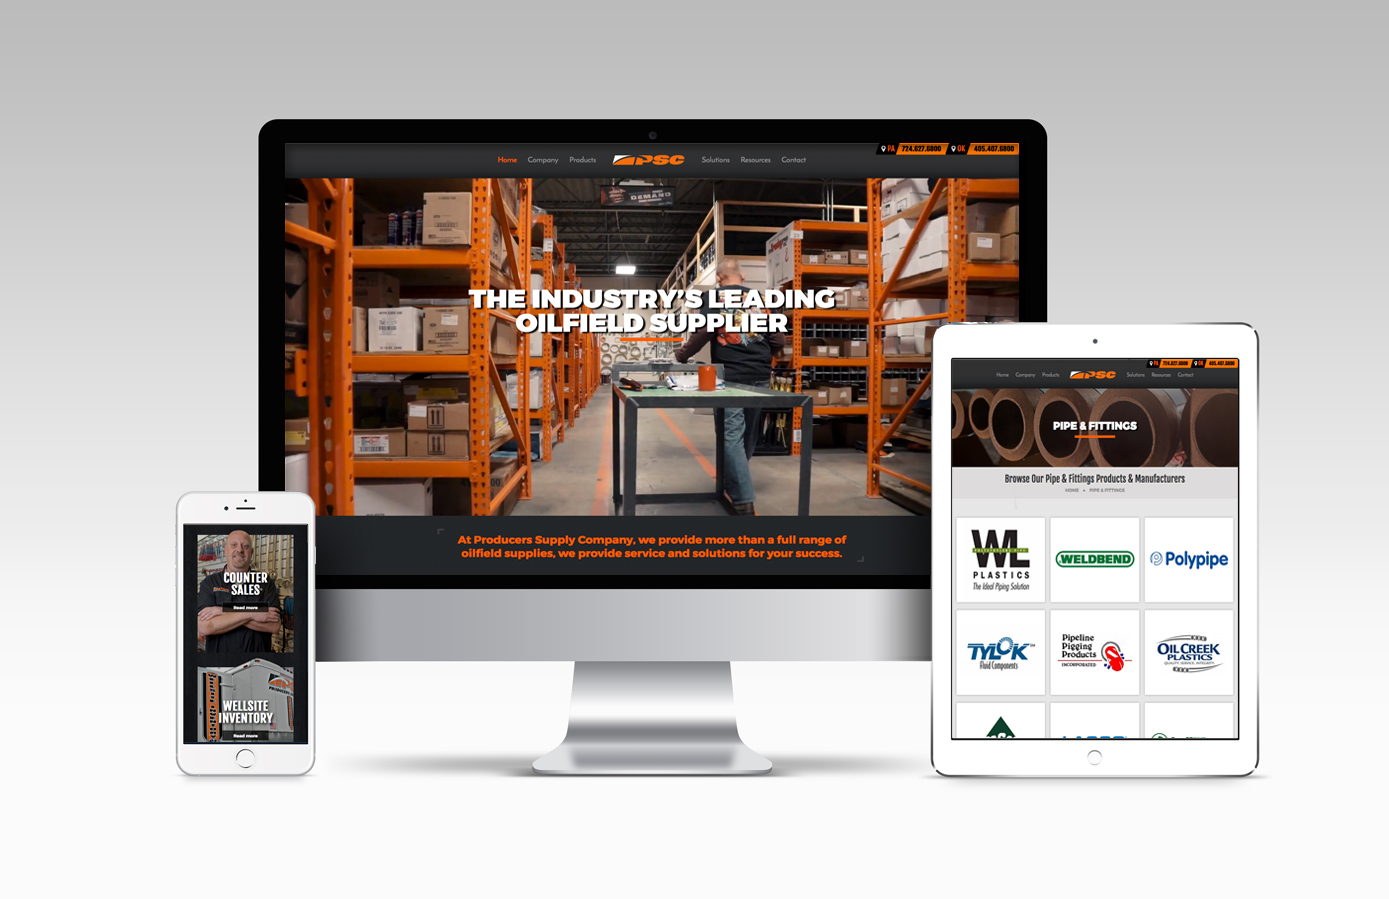 Producers Supply Co  Website Redesign and Brand Video - The